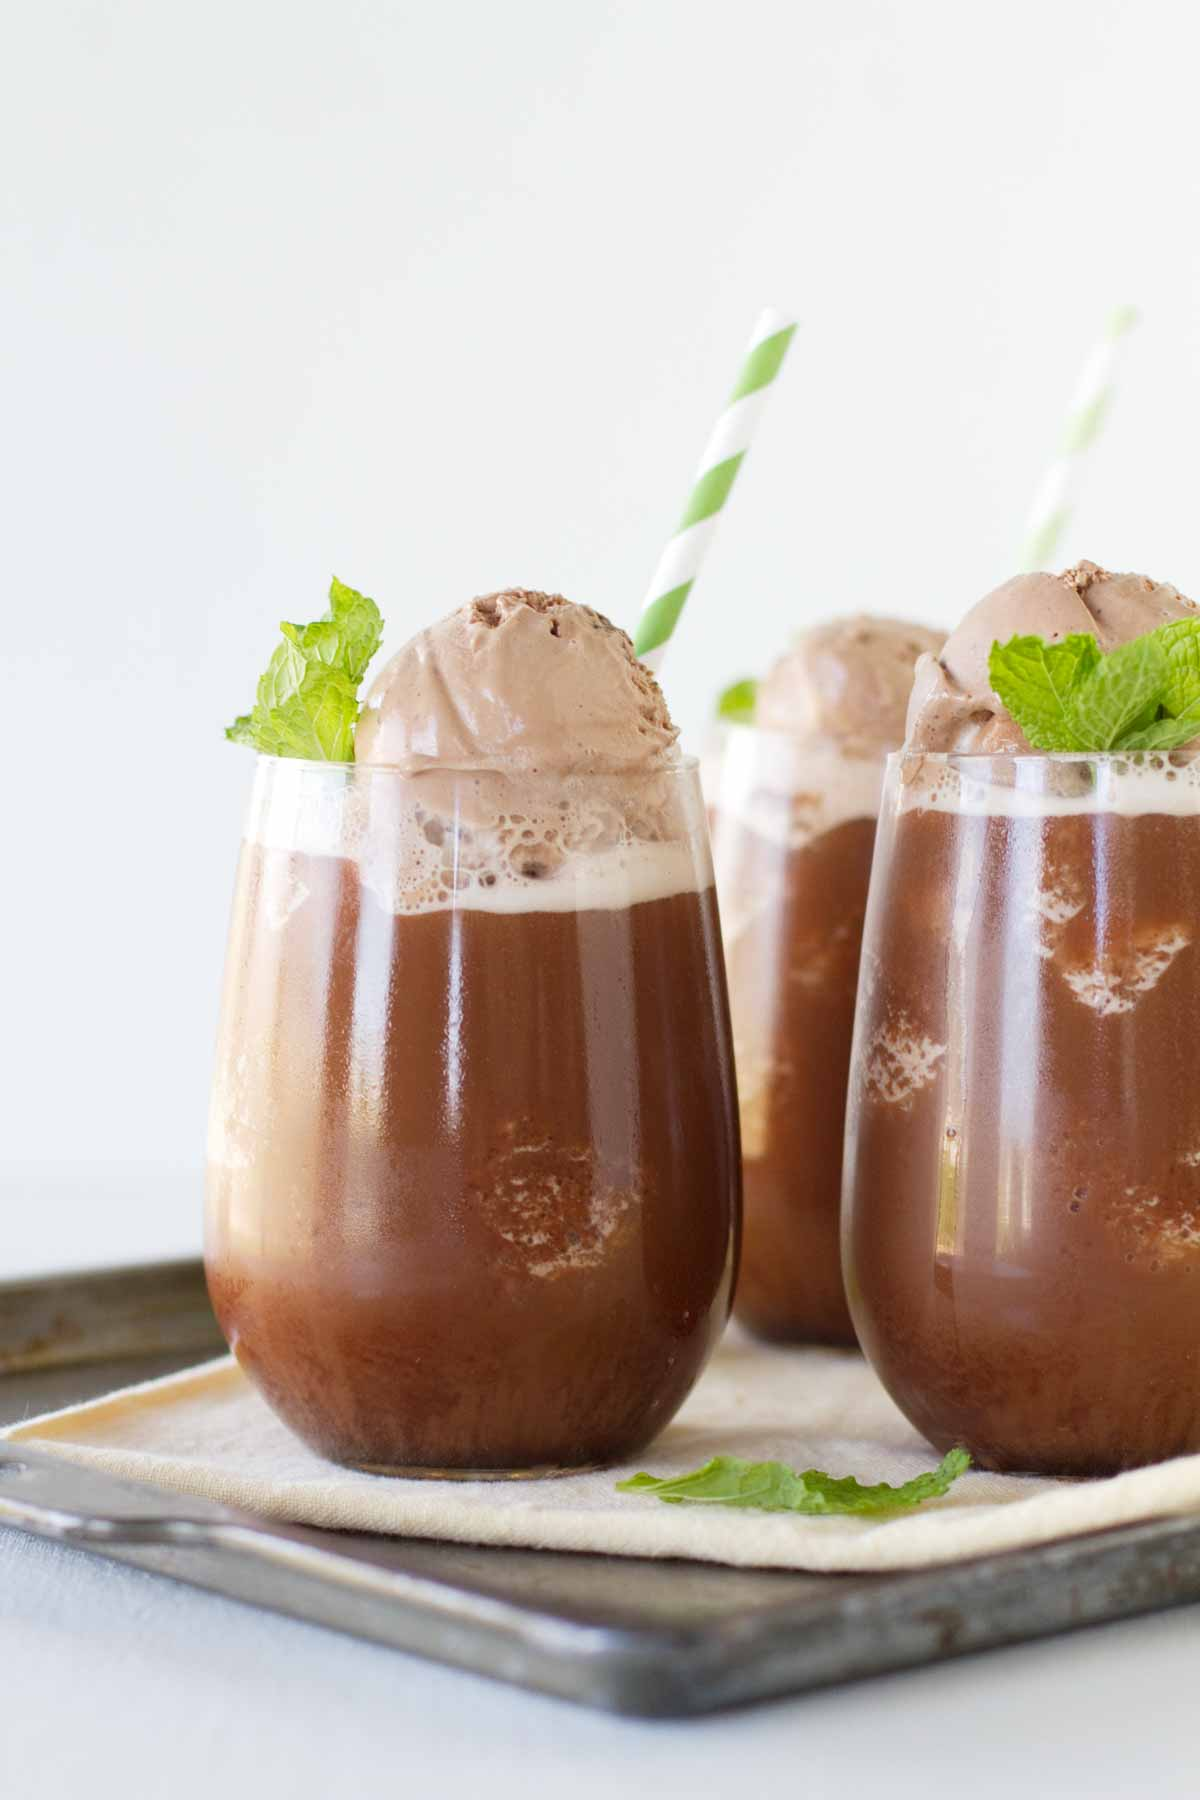 Iced Chocolate drink topped with gelato